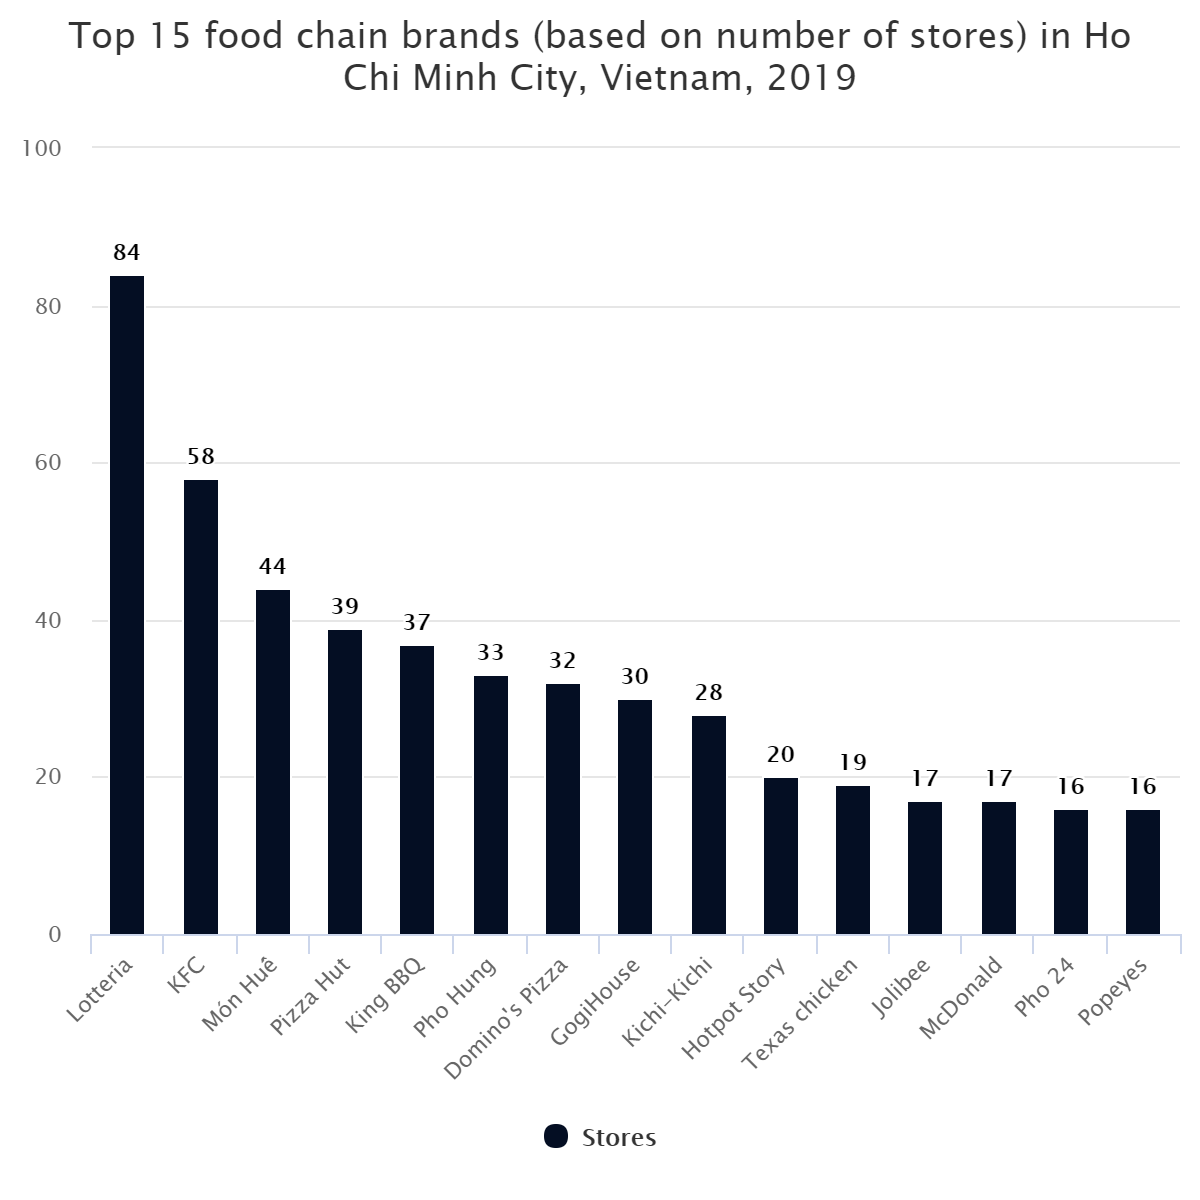 Top 15 food chain brands (based on number of stores) in Ho Chi Minh City, Vietnam, 2019